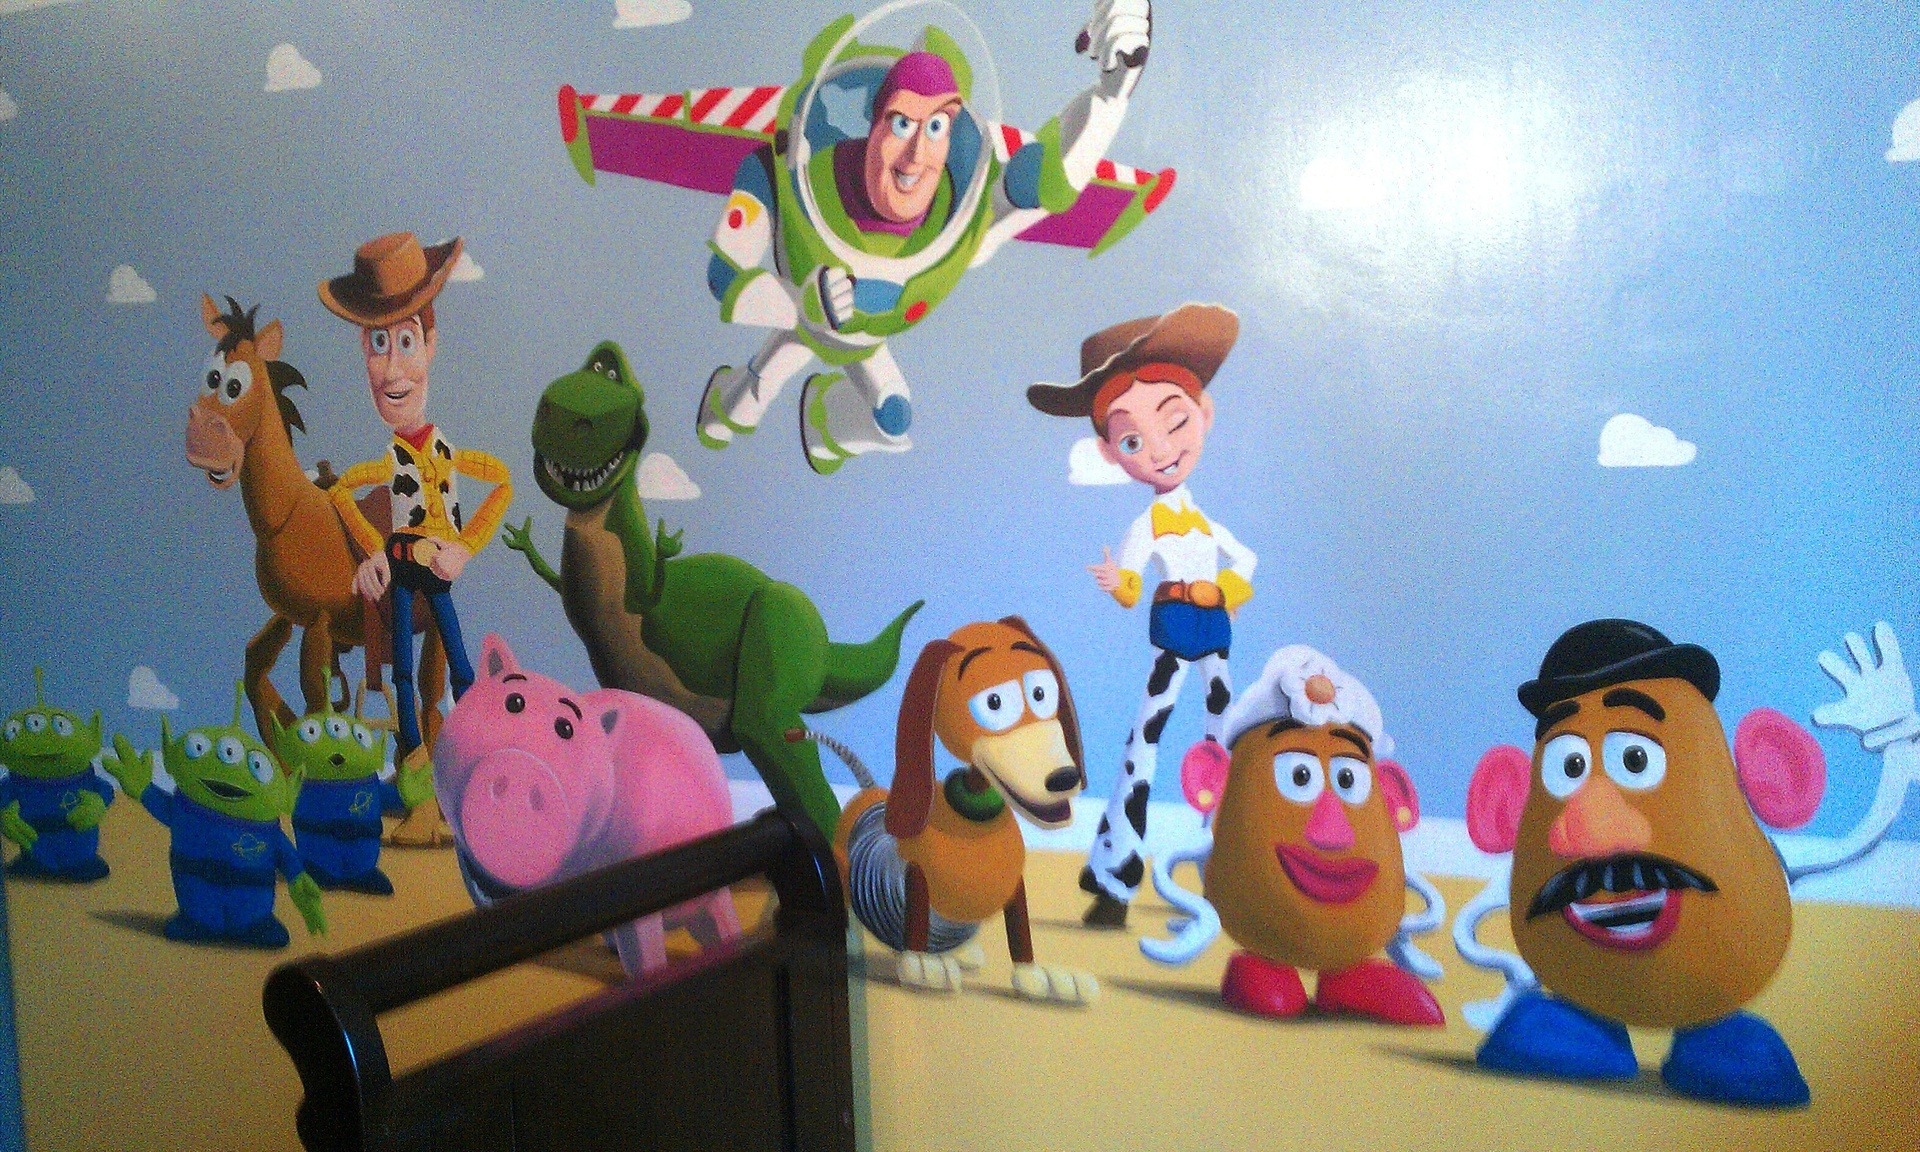 Toy story wall murals gallery home wall decoration ideas toy story wall murals amipublicfo Image collections